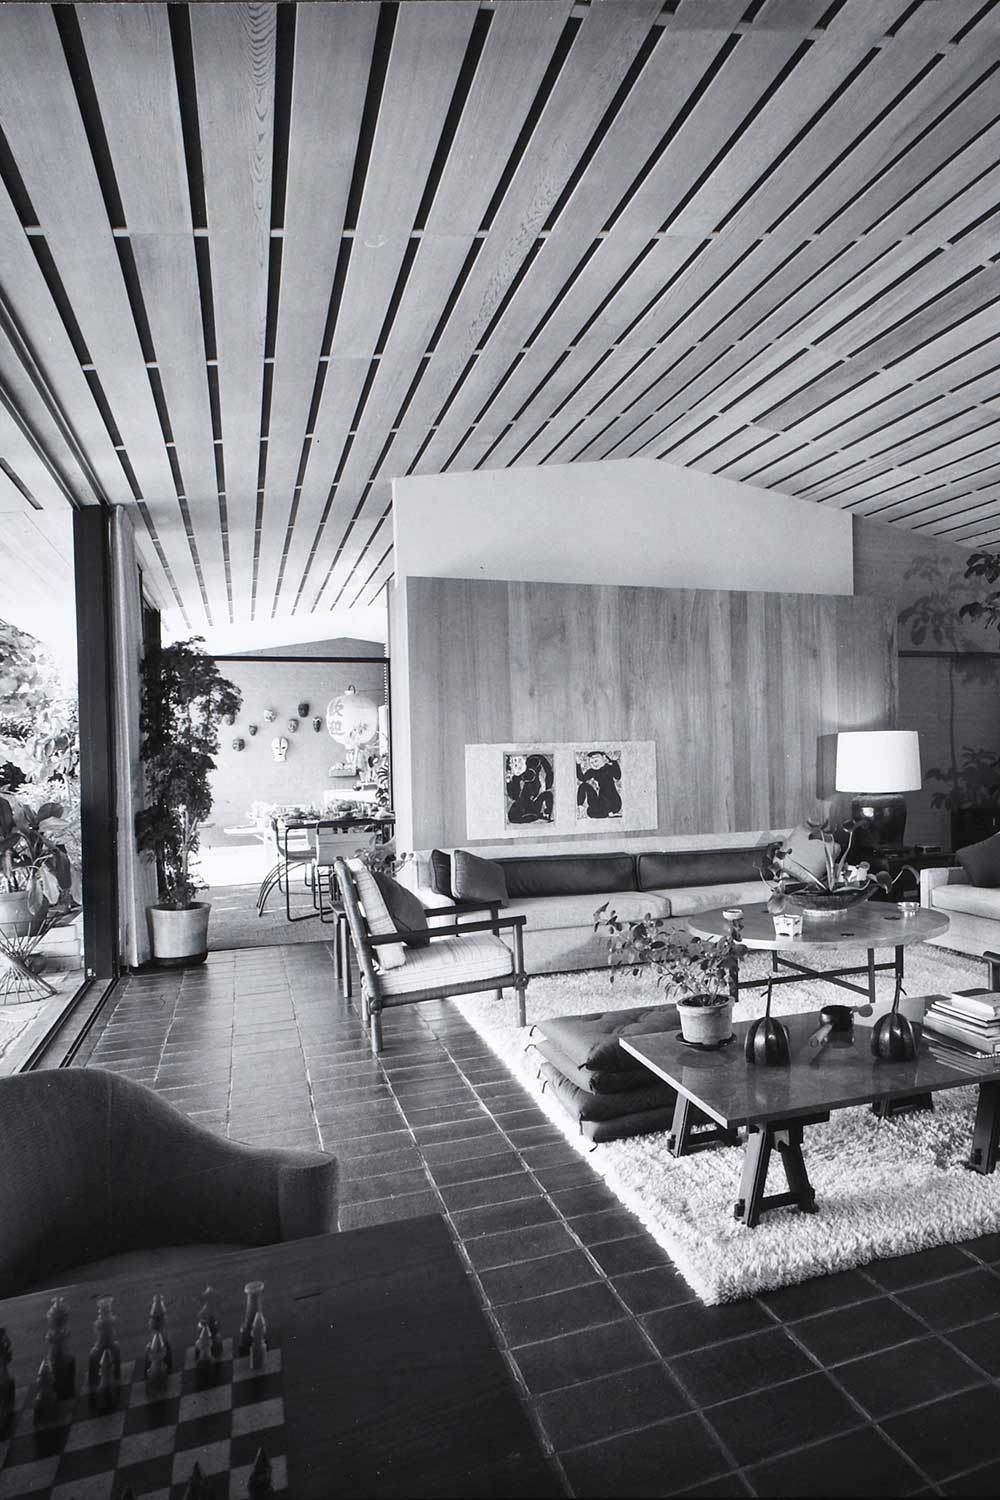 black and white photo of interior of Ossipoff House